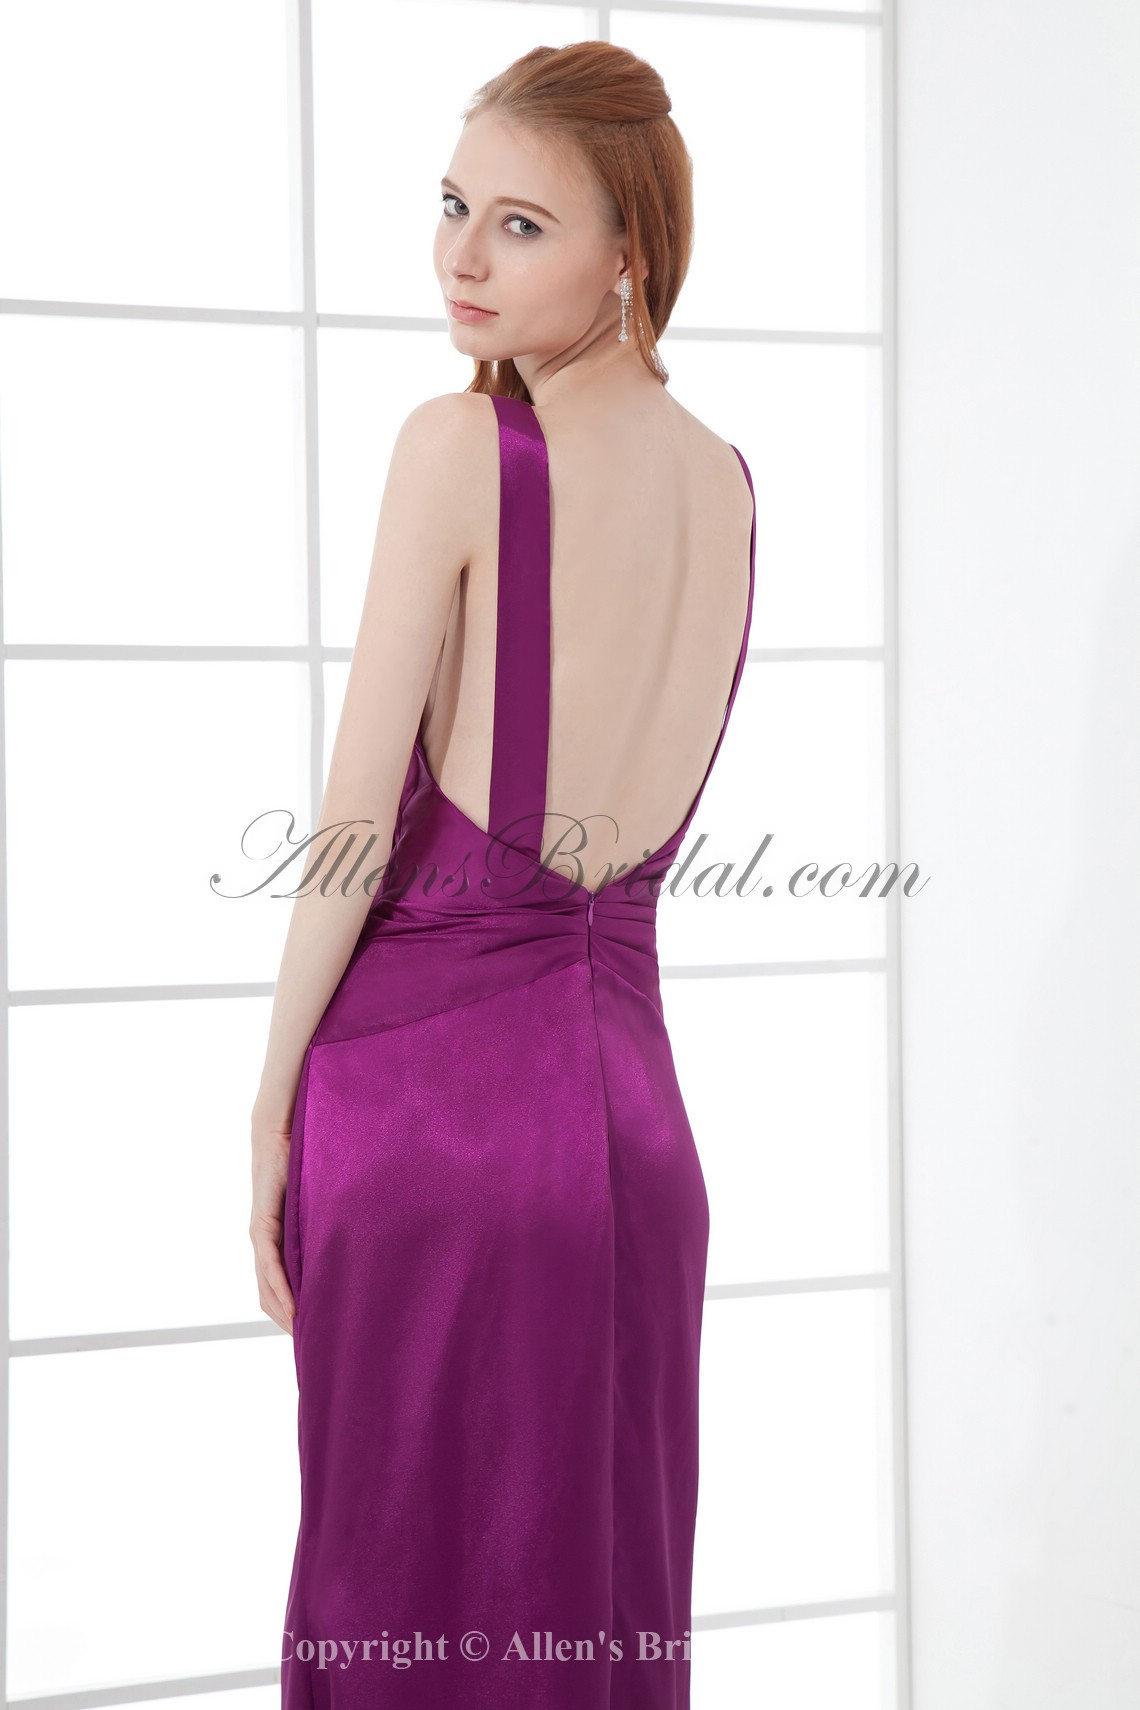 /68-543/satin-straps-sheath-ankle-length-sequins-prom-dress.jpg